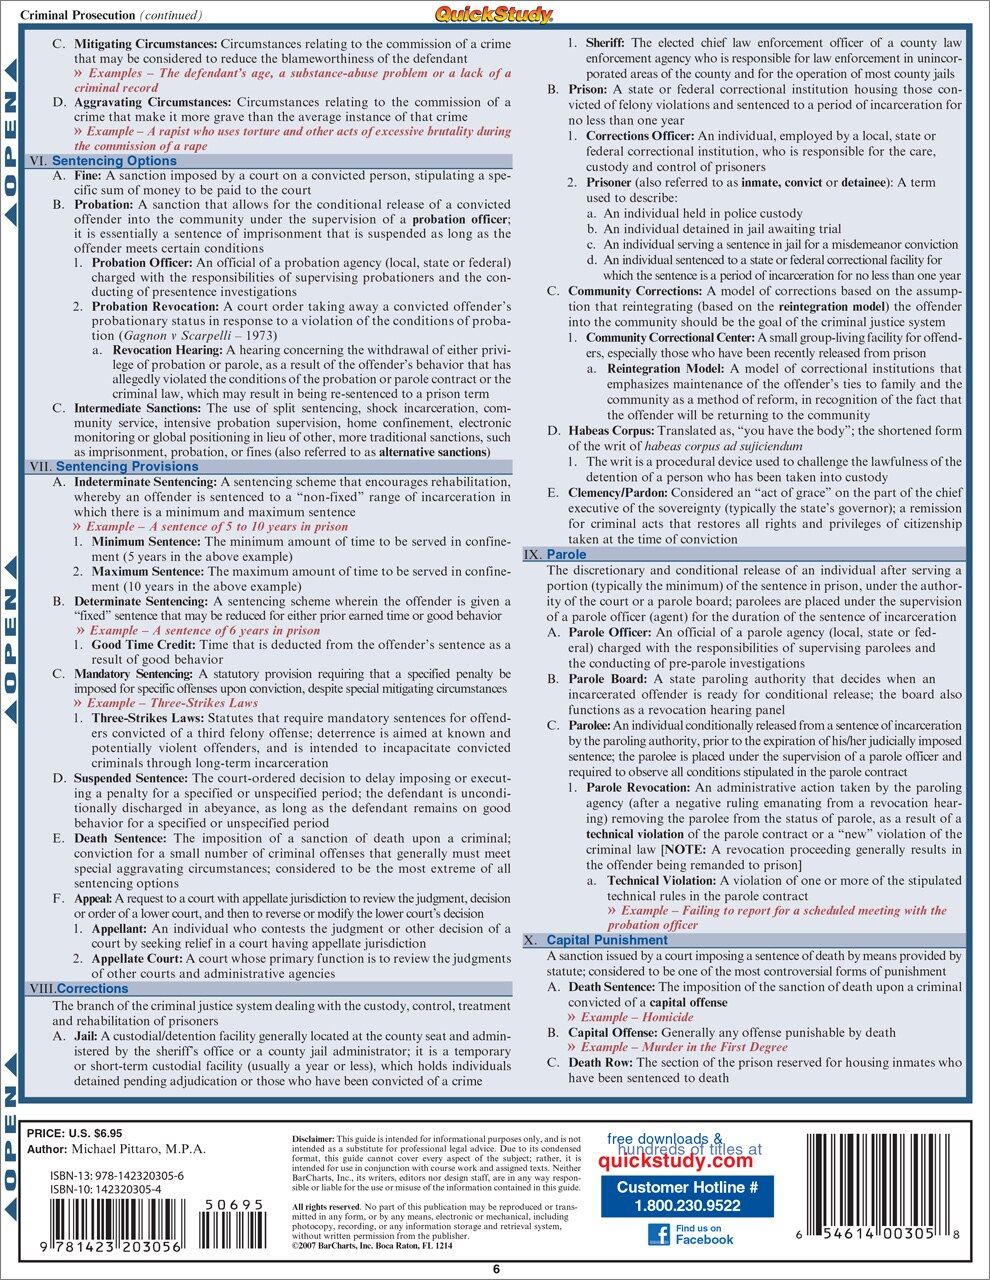 Quick Study QuickStudy Criminal Justice Laminated Reference Guide BarCharts Publishing Study Guide Back Image